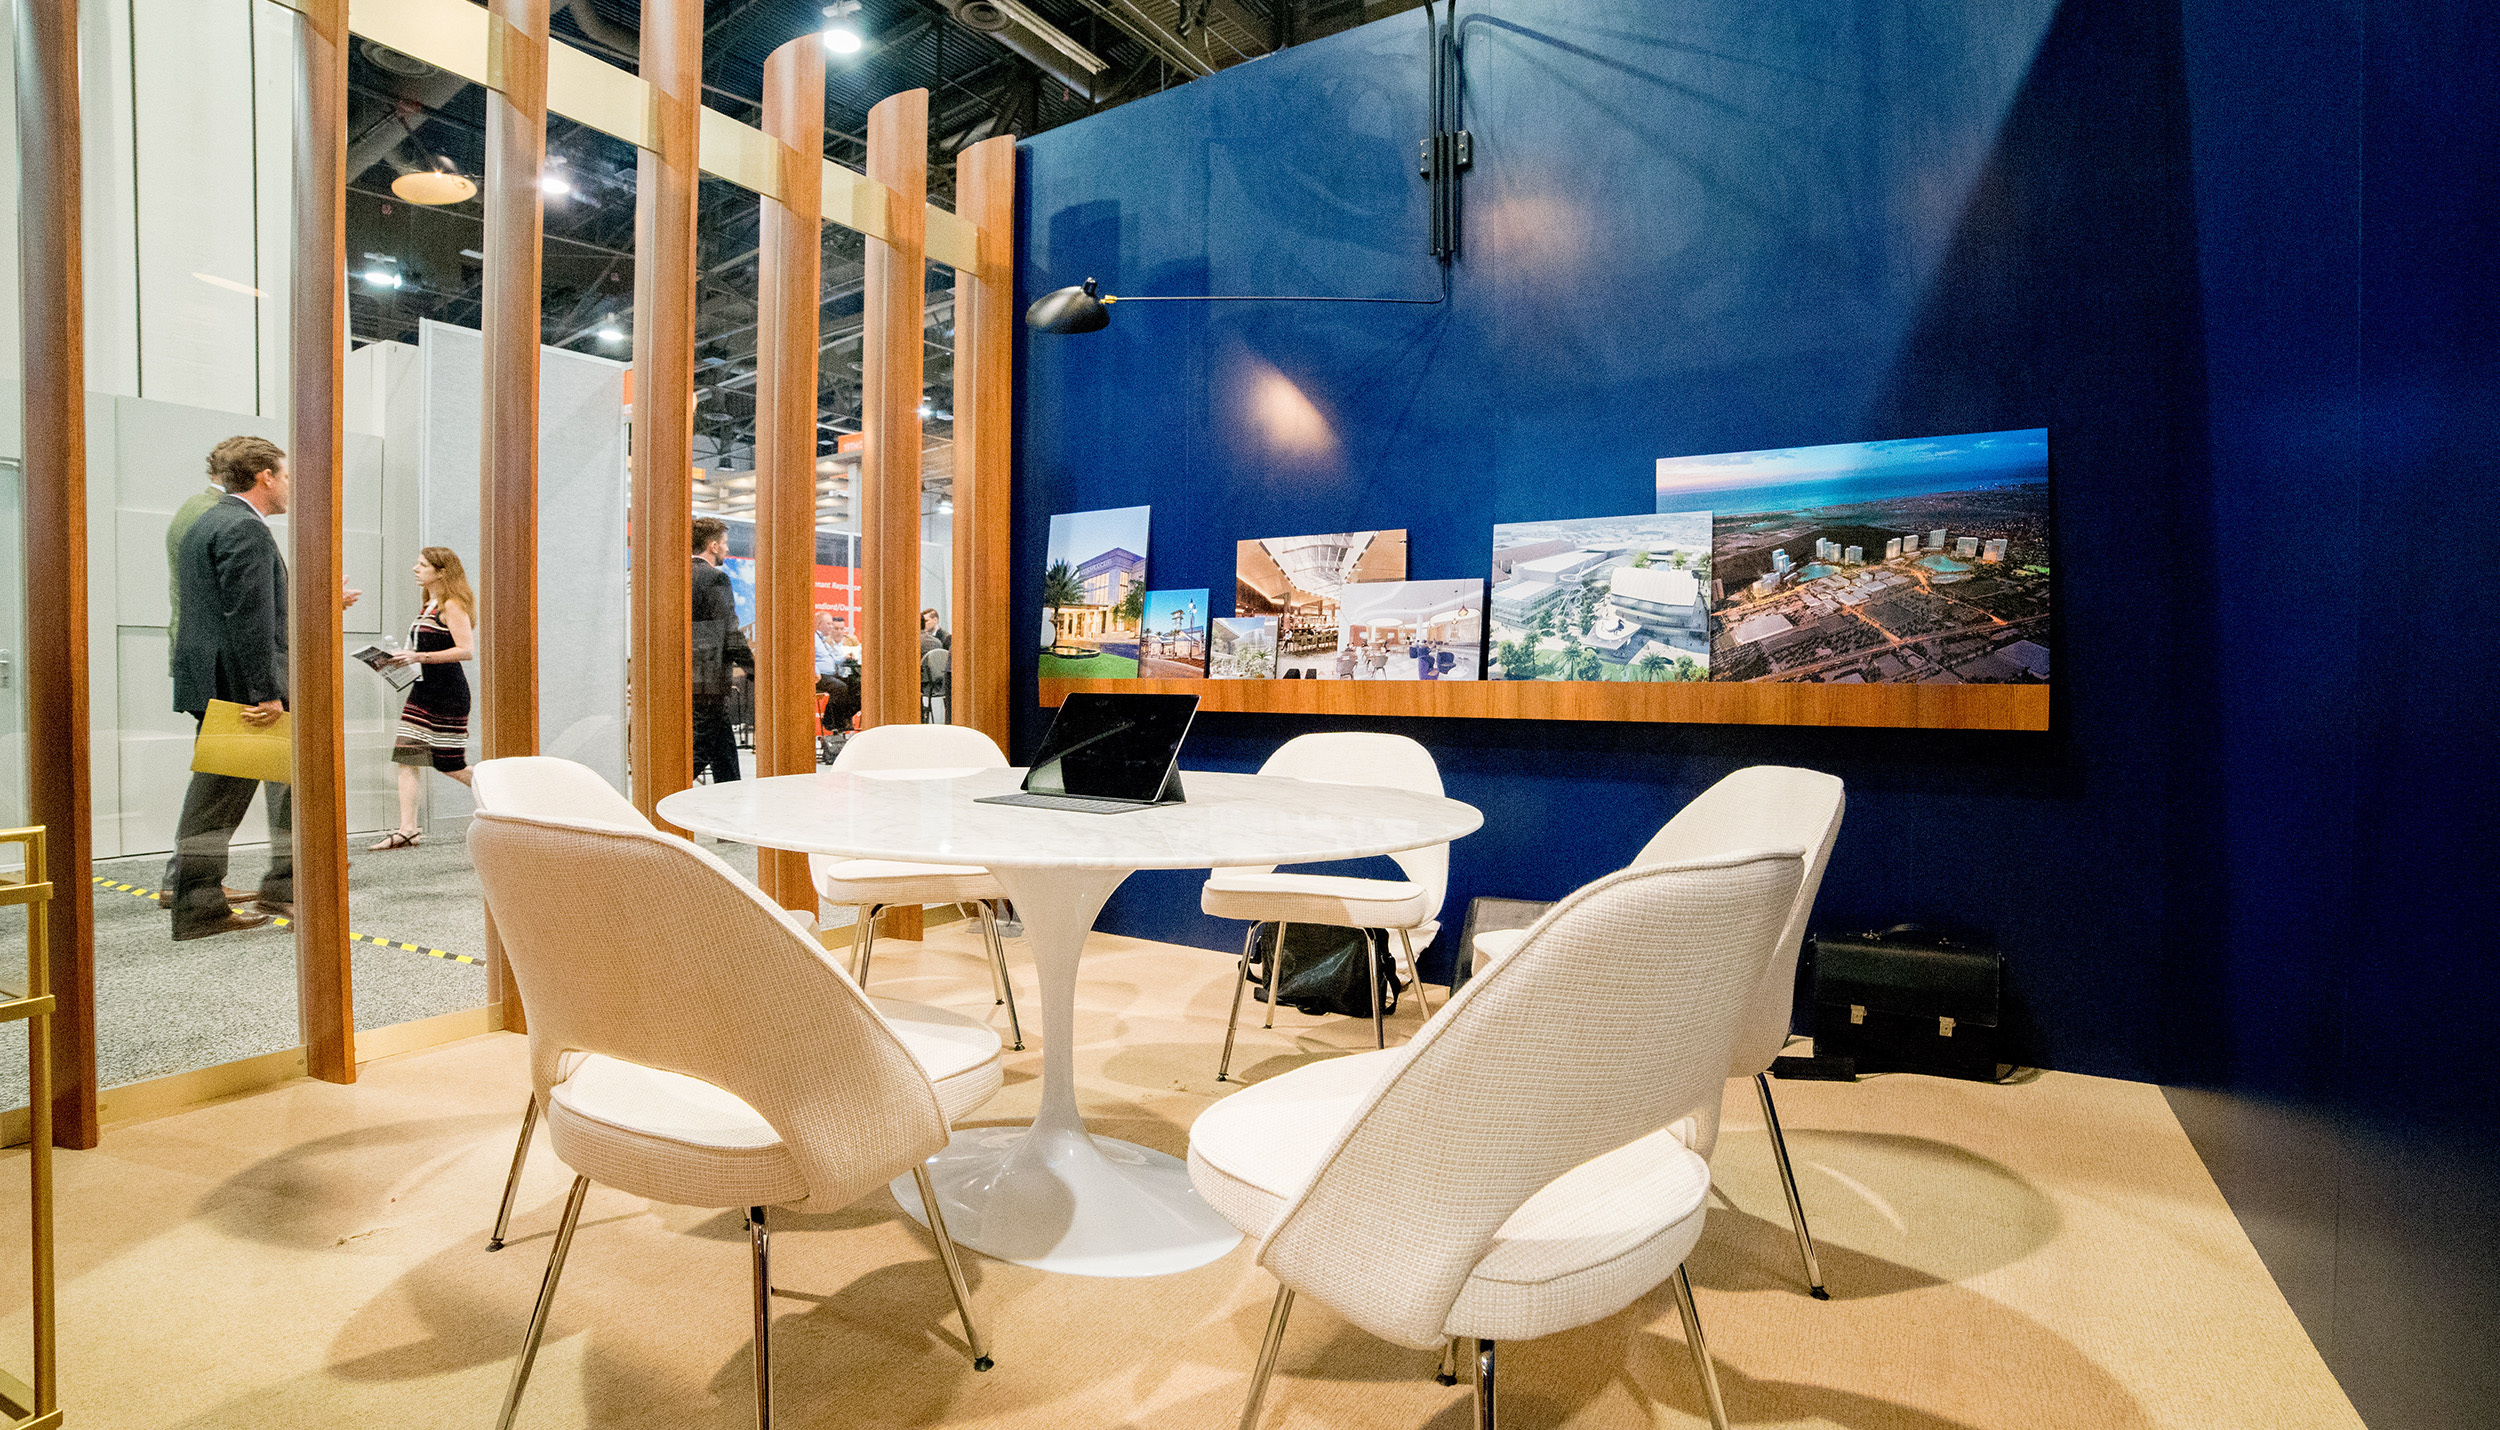 Best Exhibition Booth Design : Three trade show exhibit booth ideas from real life